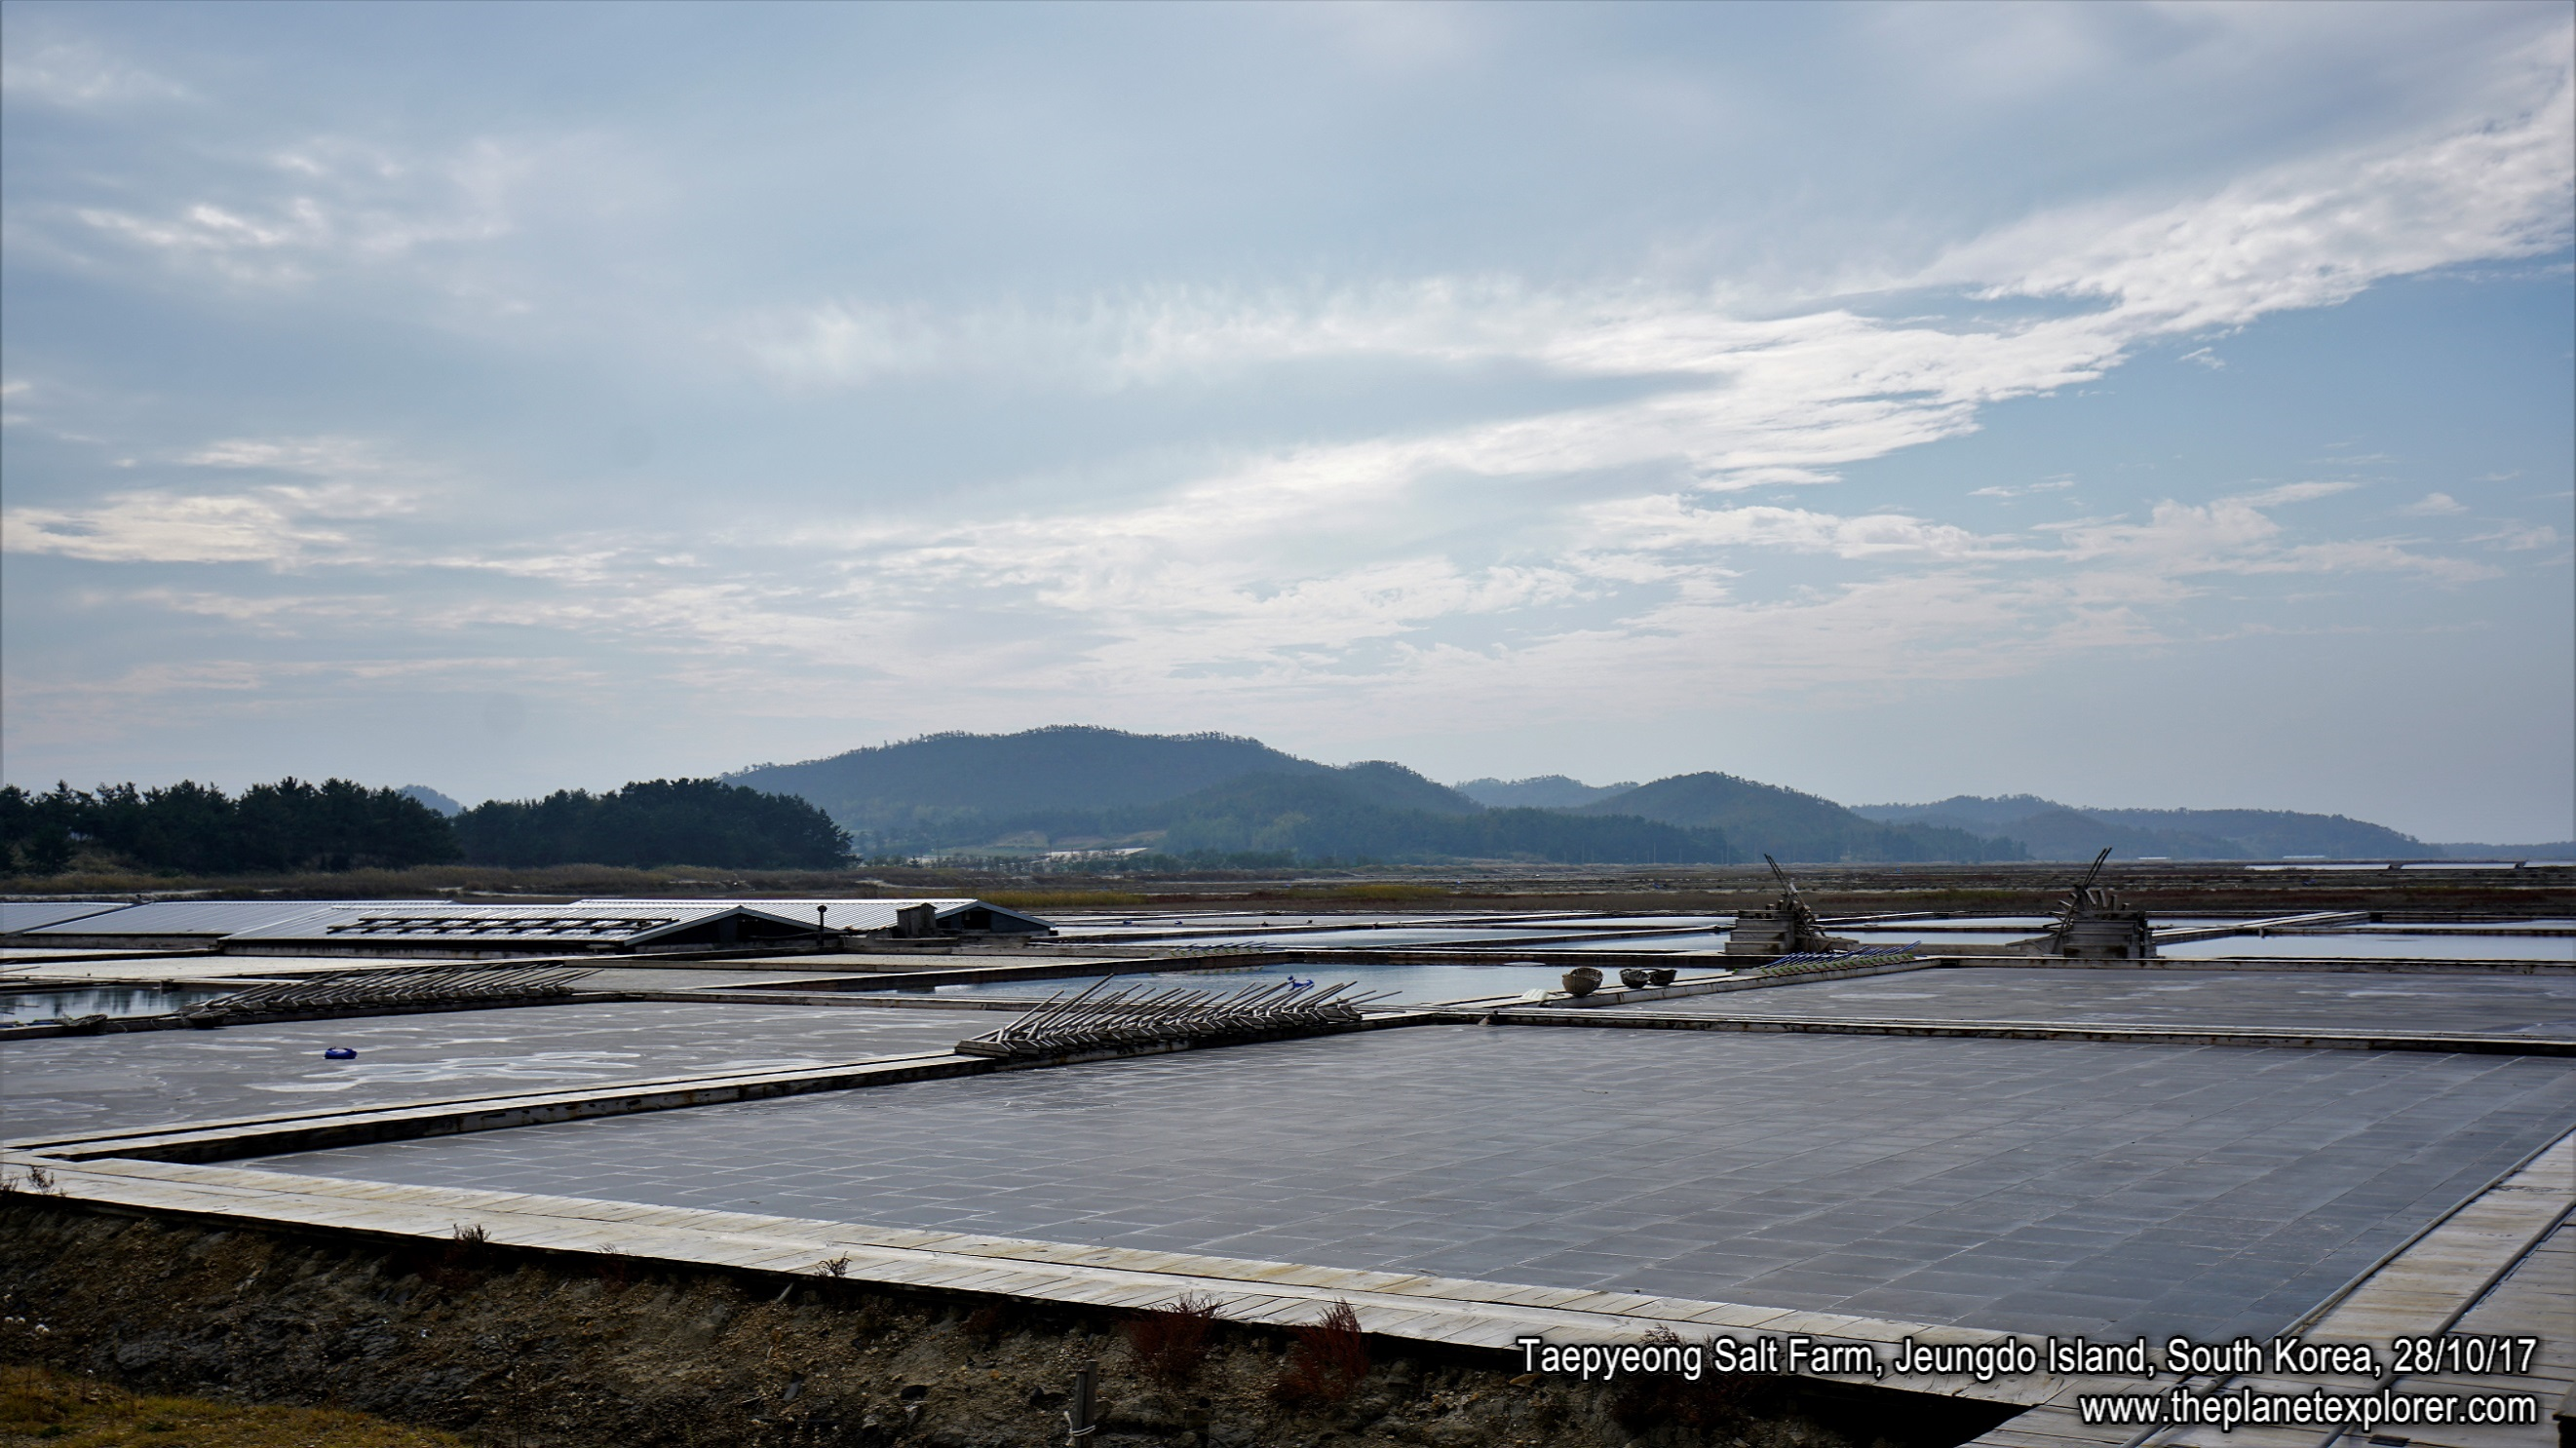 20171028_1354_South Korea_Jeungdo Island_Taepyeong Salt Farm_DSC06336_Sony a7R2_LR_@